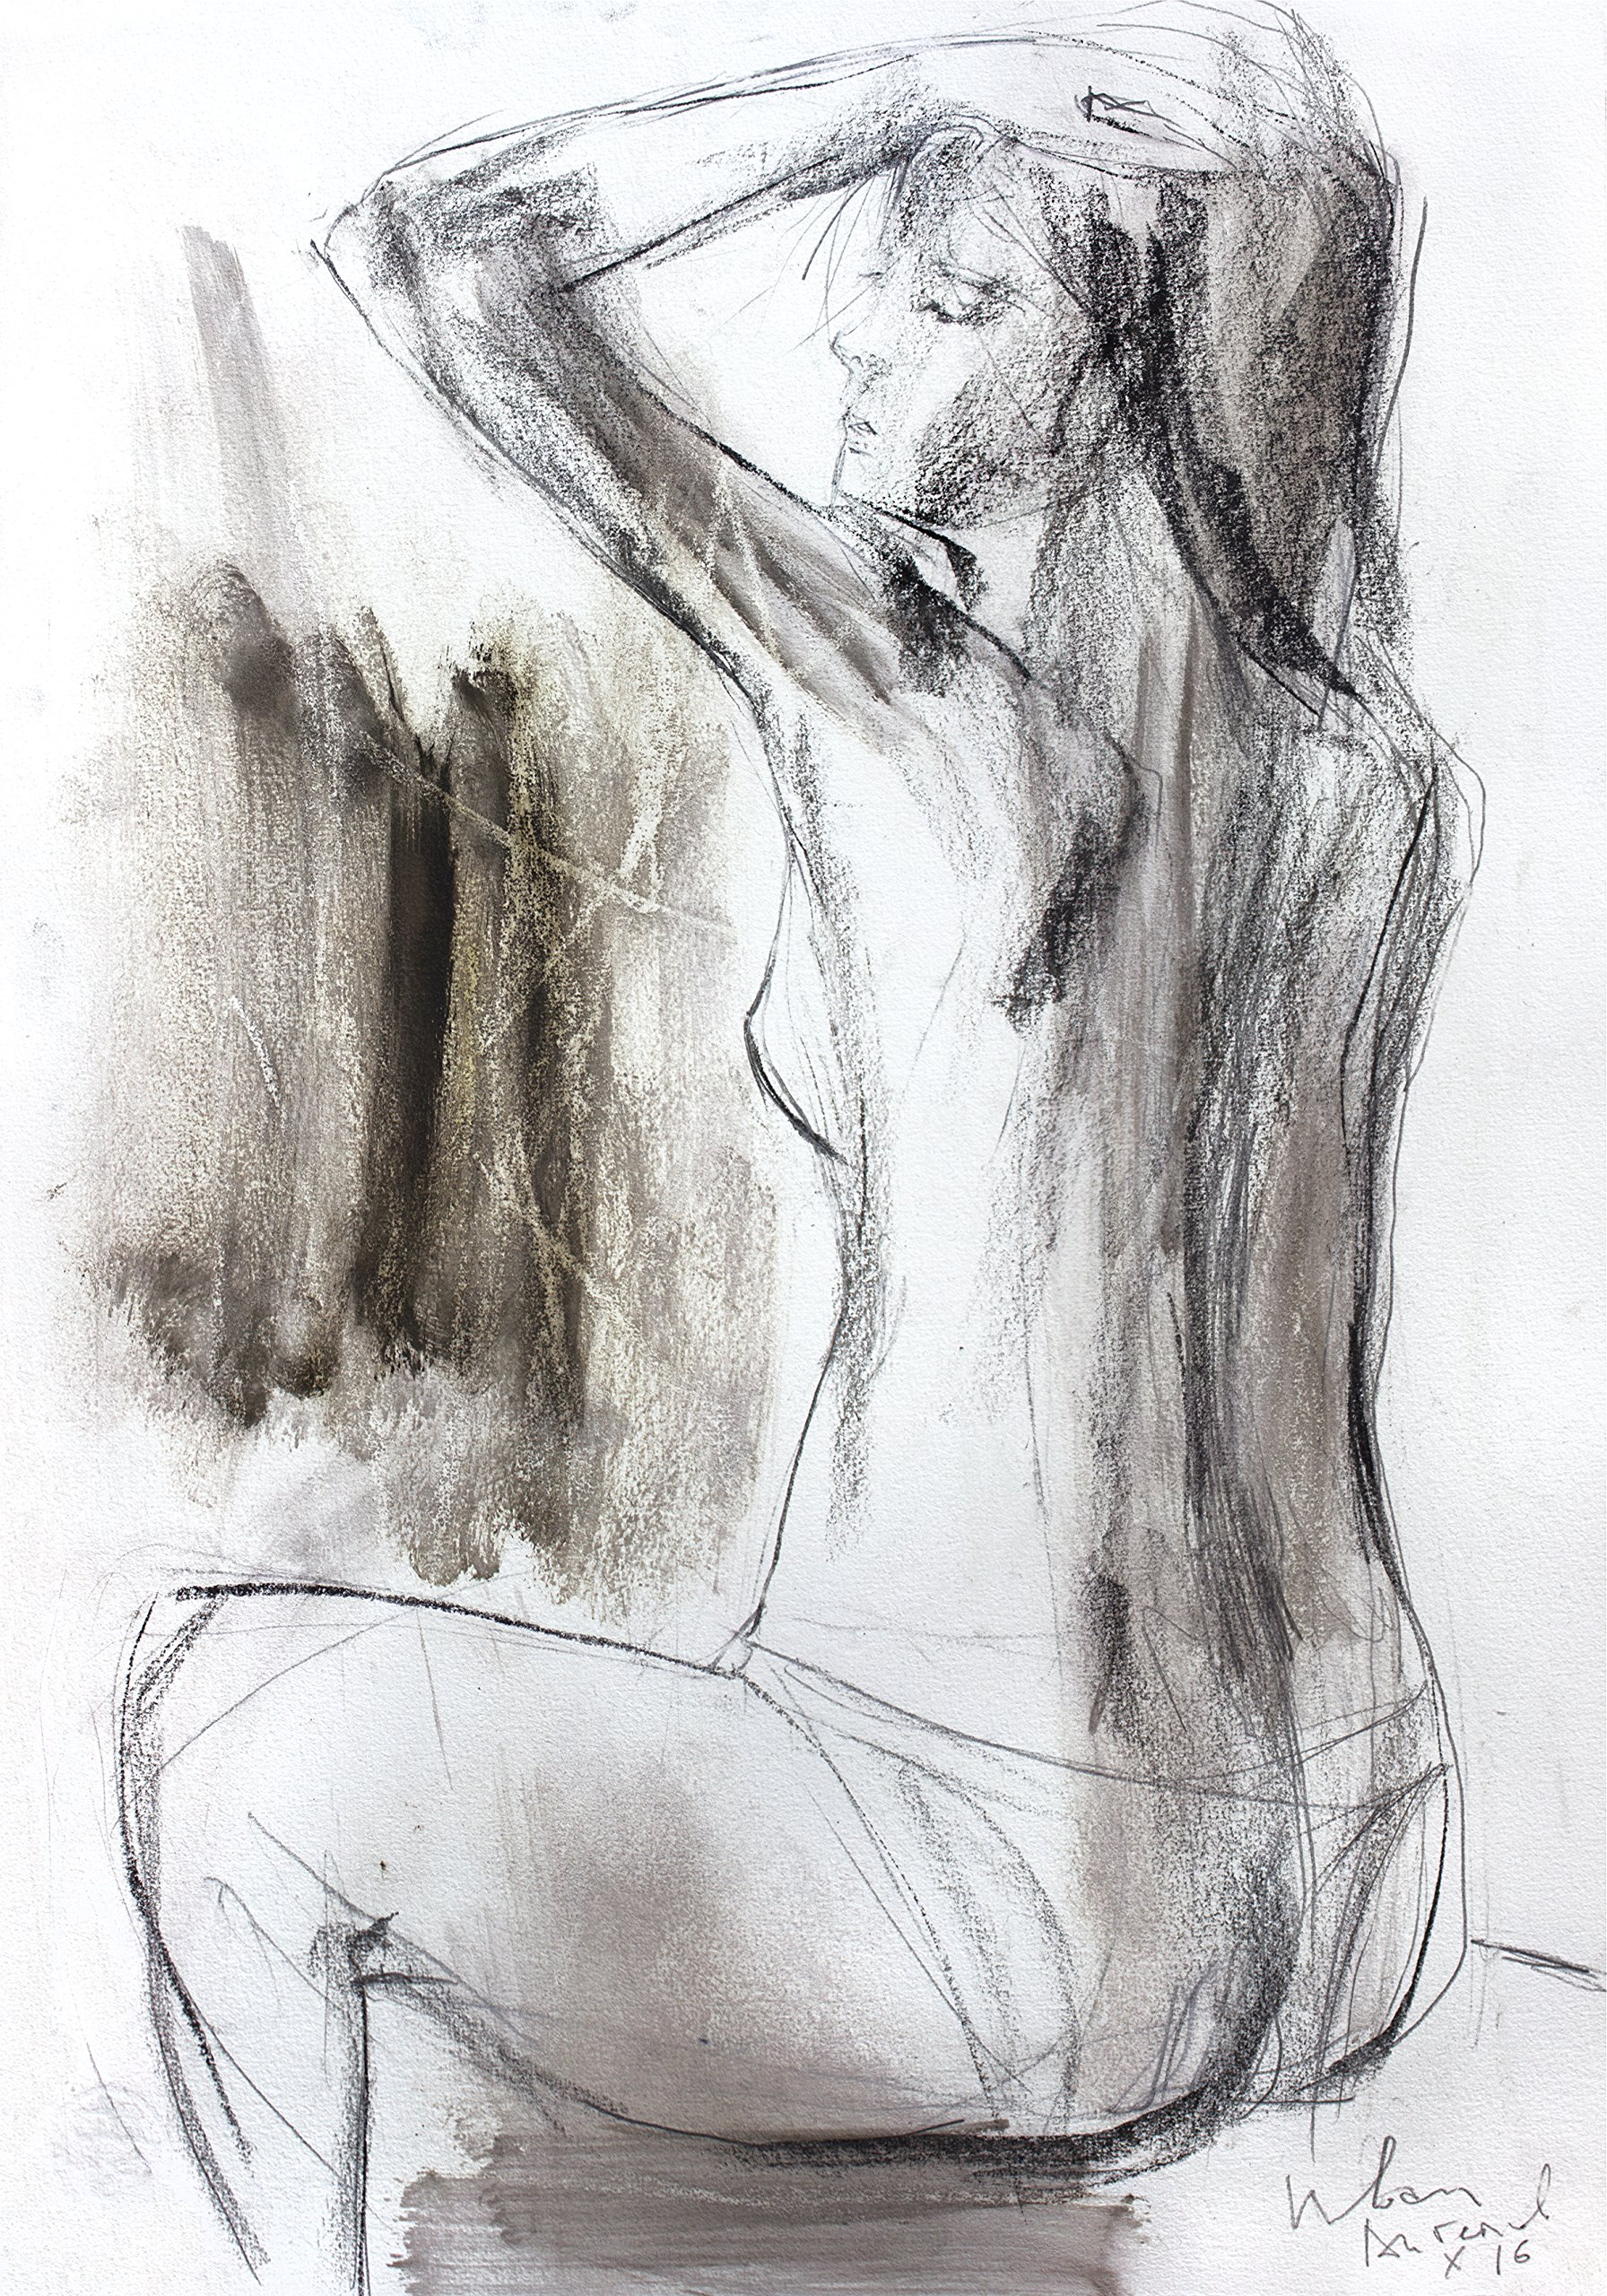 Charcoal drawing Original Artistic sketch Nude Modern Figurative graphic art Woman Wall decor by IvMarART